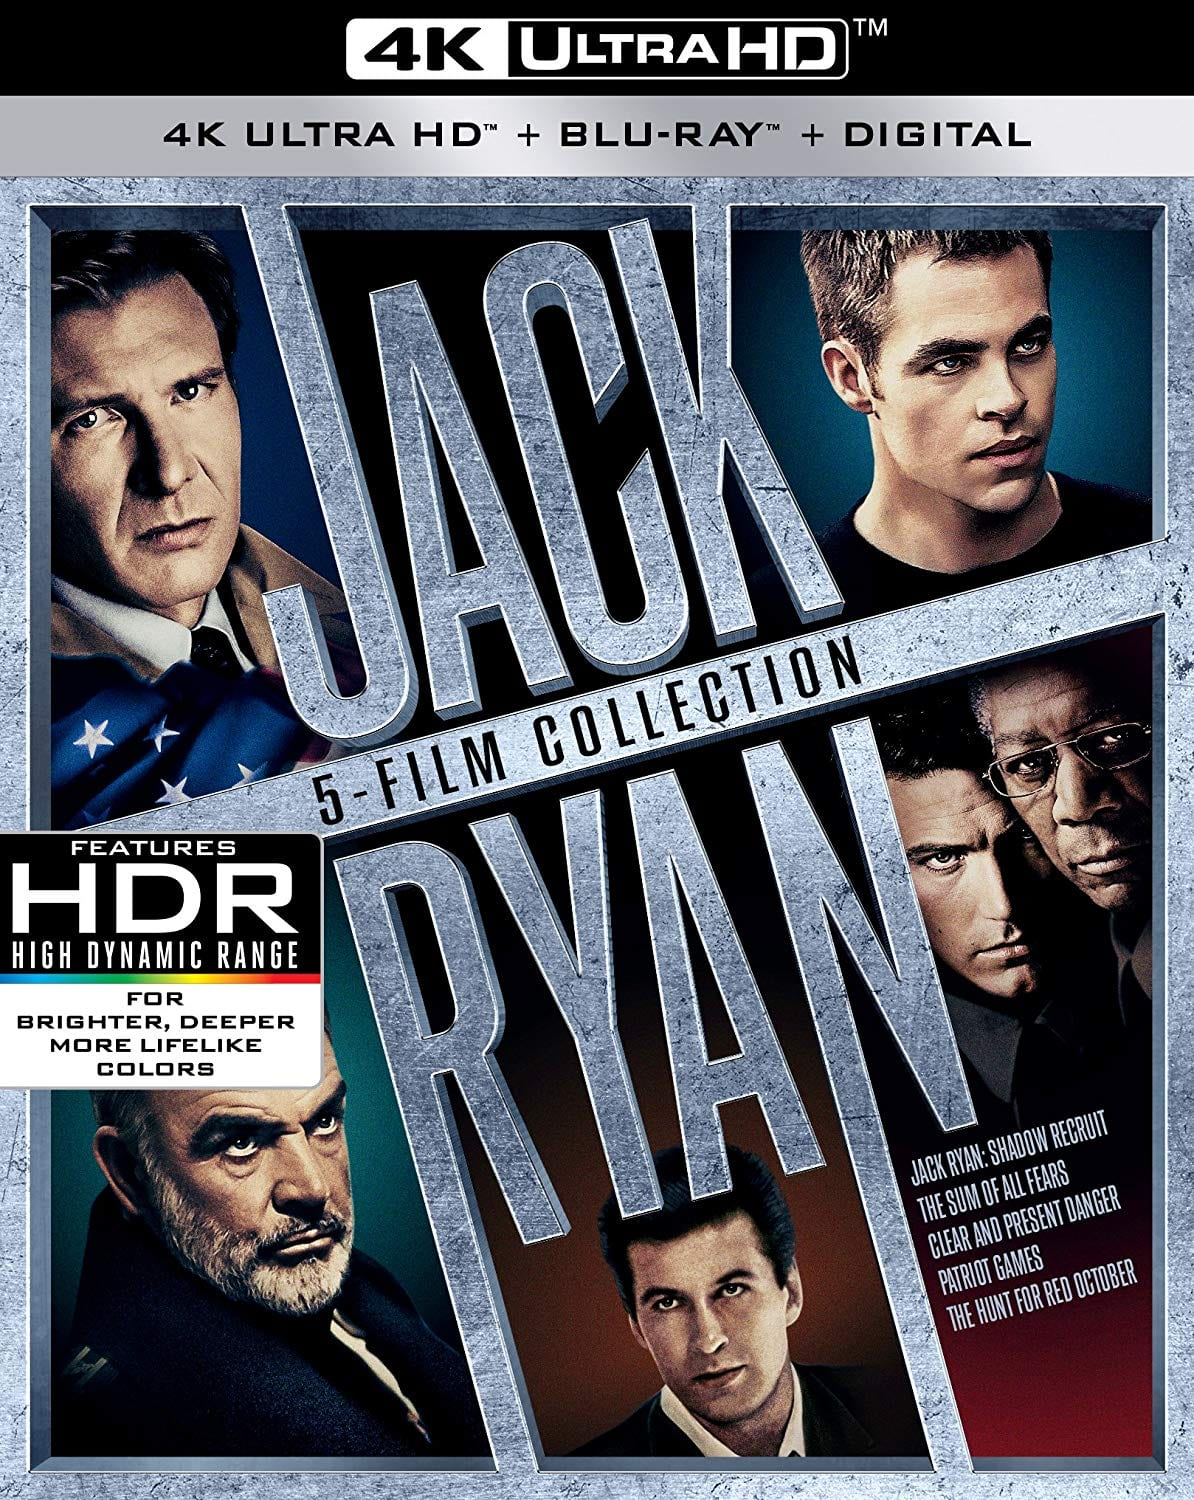 Jack Ryan 4K 5-Movie Collection $31.49 on Amazon with Free Shipping.